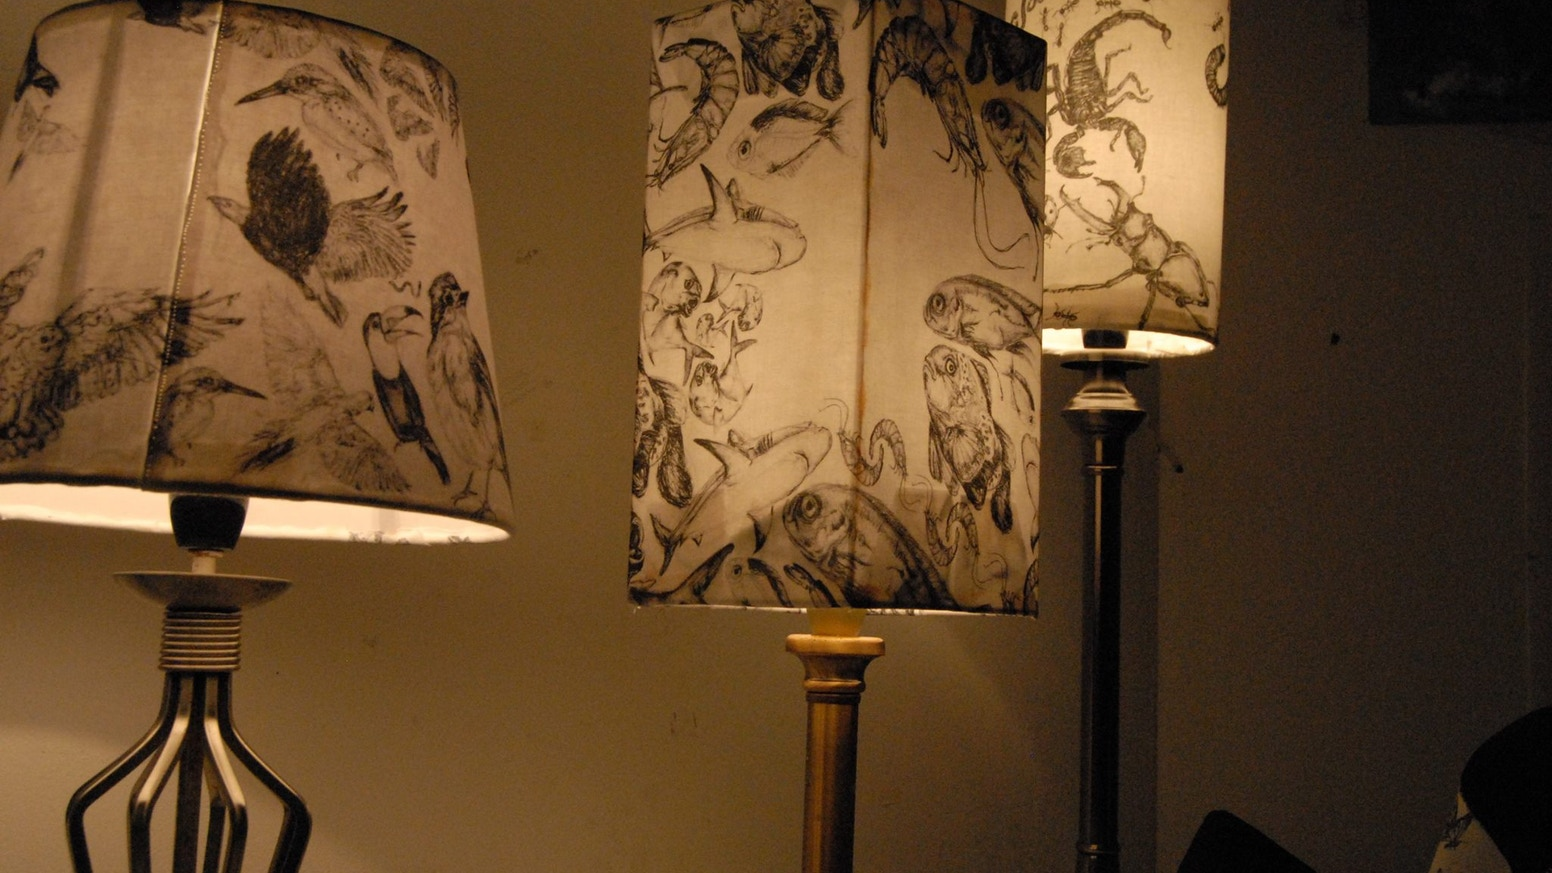 Hand crafted lampshades by jess kickstarter a collection of designer hand drawn animal lampshades aloadofball Gallery